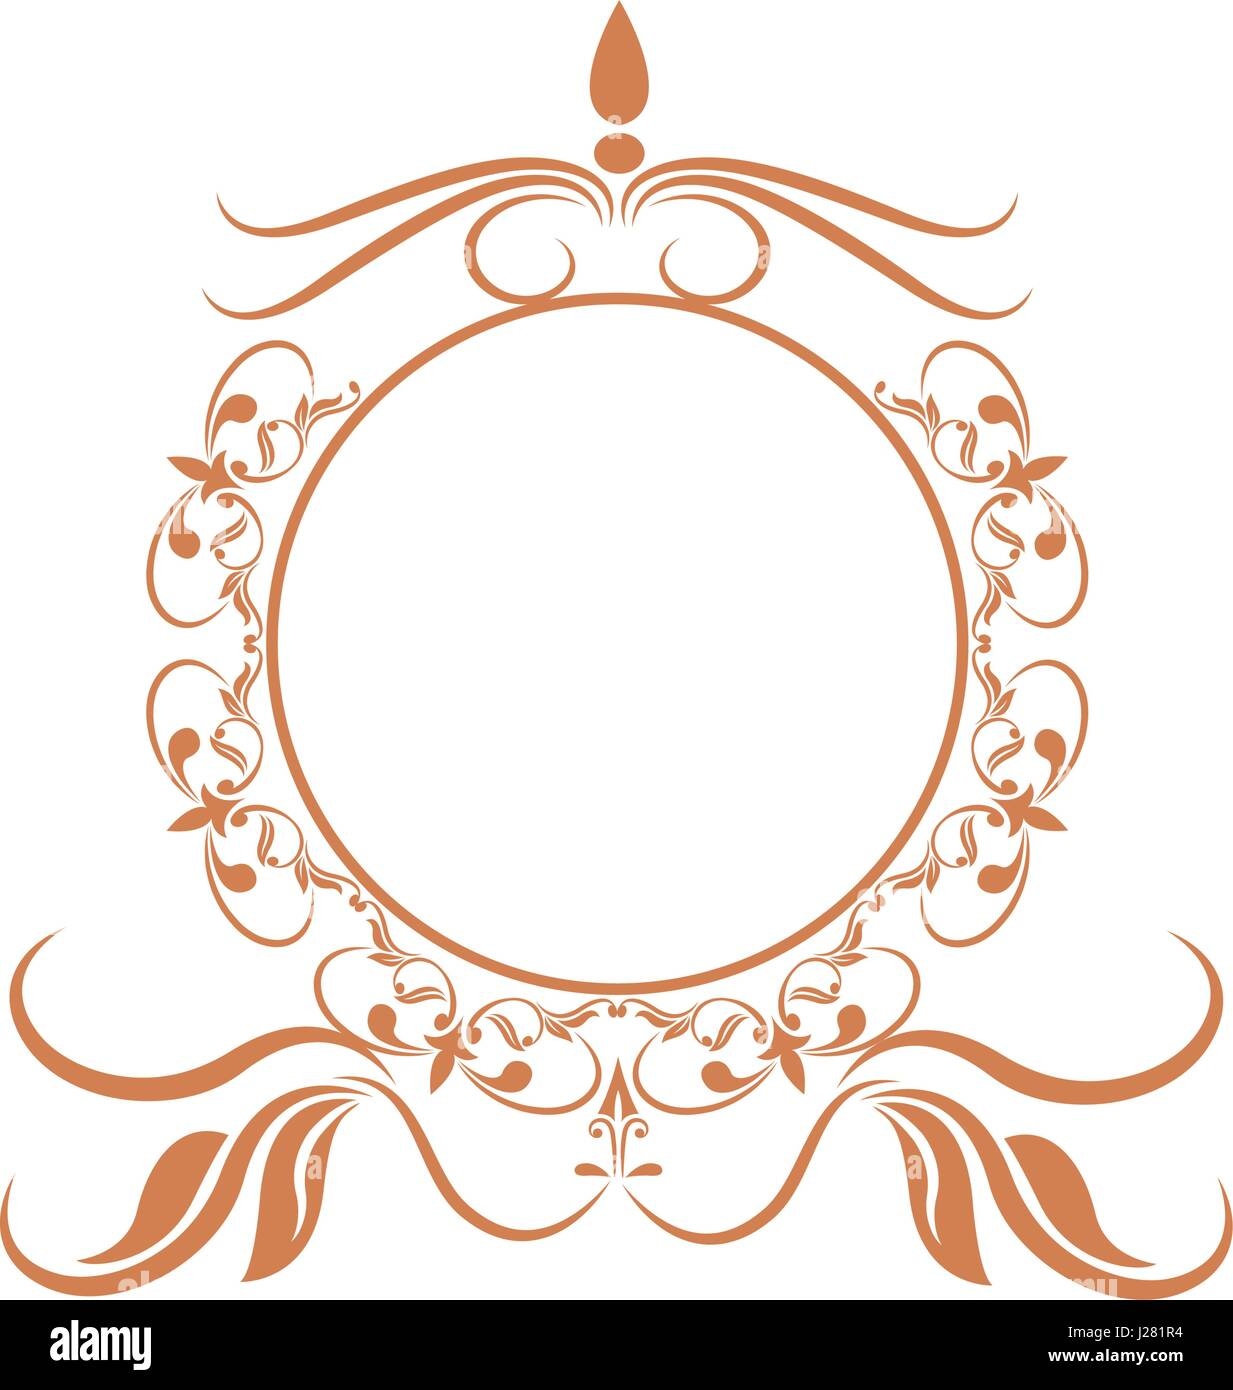 elegant round decorative frame flourish calligraphy golden Stock ...